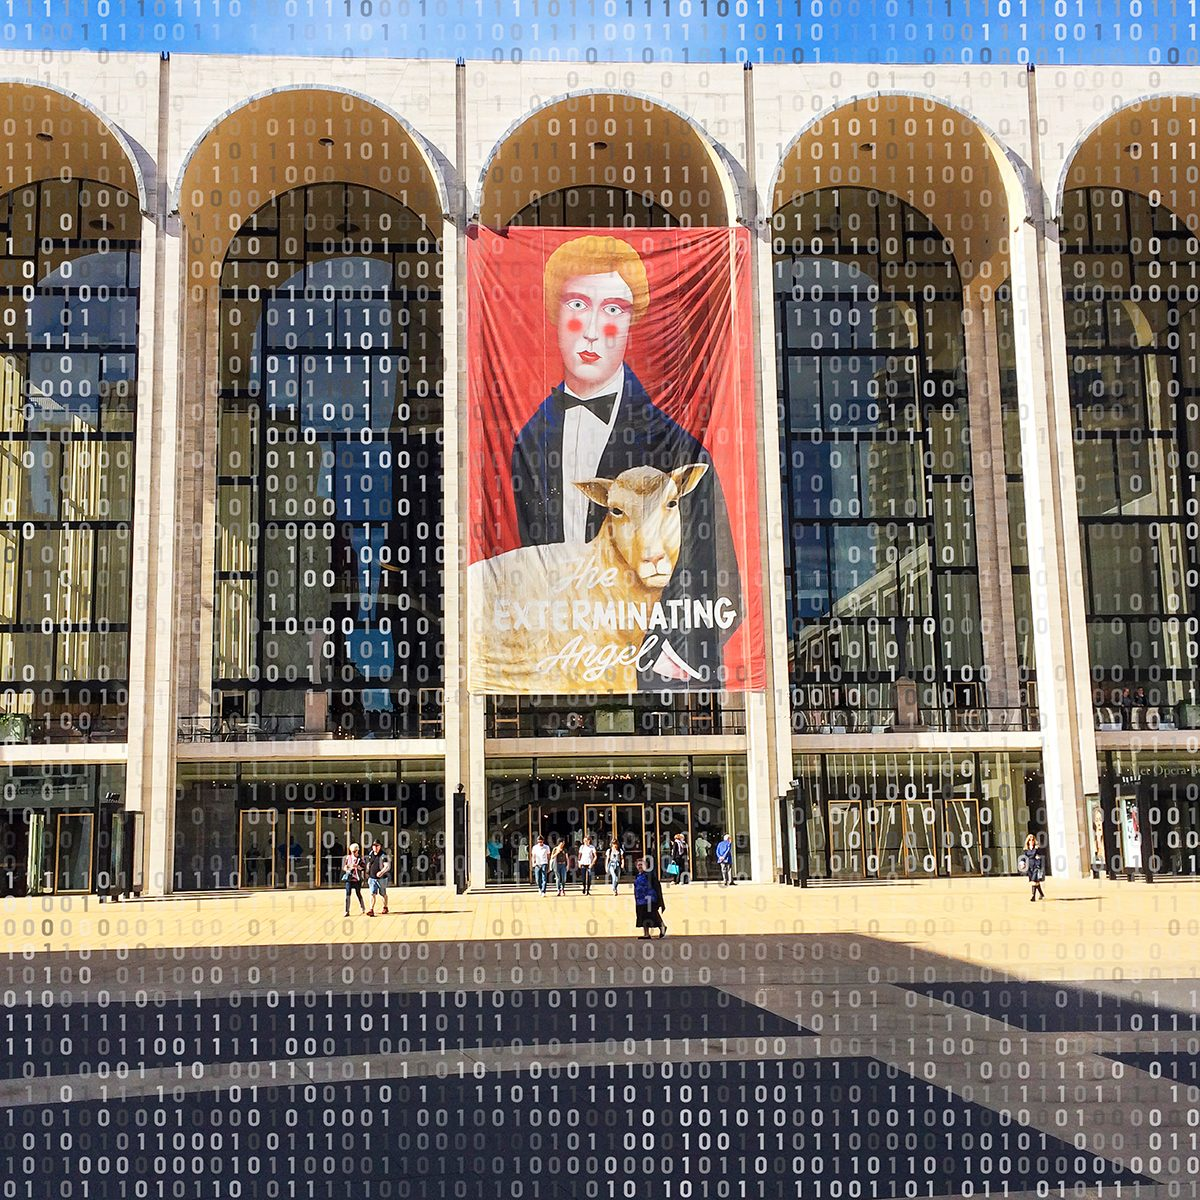 Exterior view of the Metropolitan Opera House from Lincoln Center Plaza, New York, New York, October 22, 2017. A large banner advertises the premiere of 'The Exterminating Angel' (by Thomas Ades). (Photo by Linda Vartoogian/Getty Images)